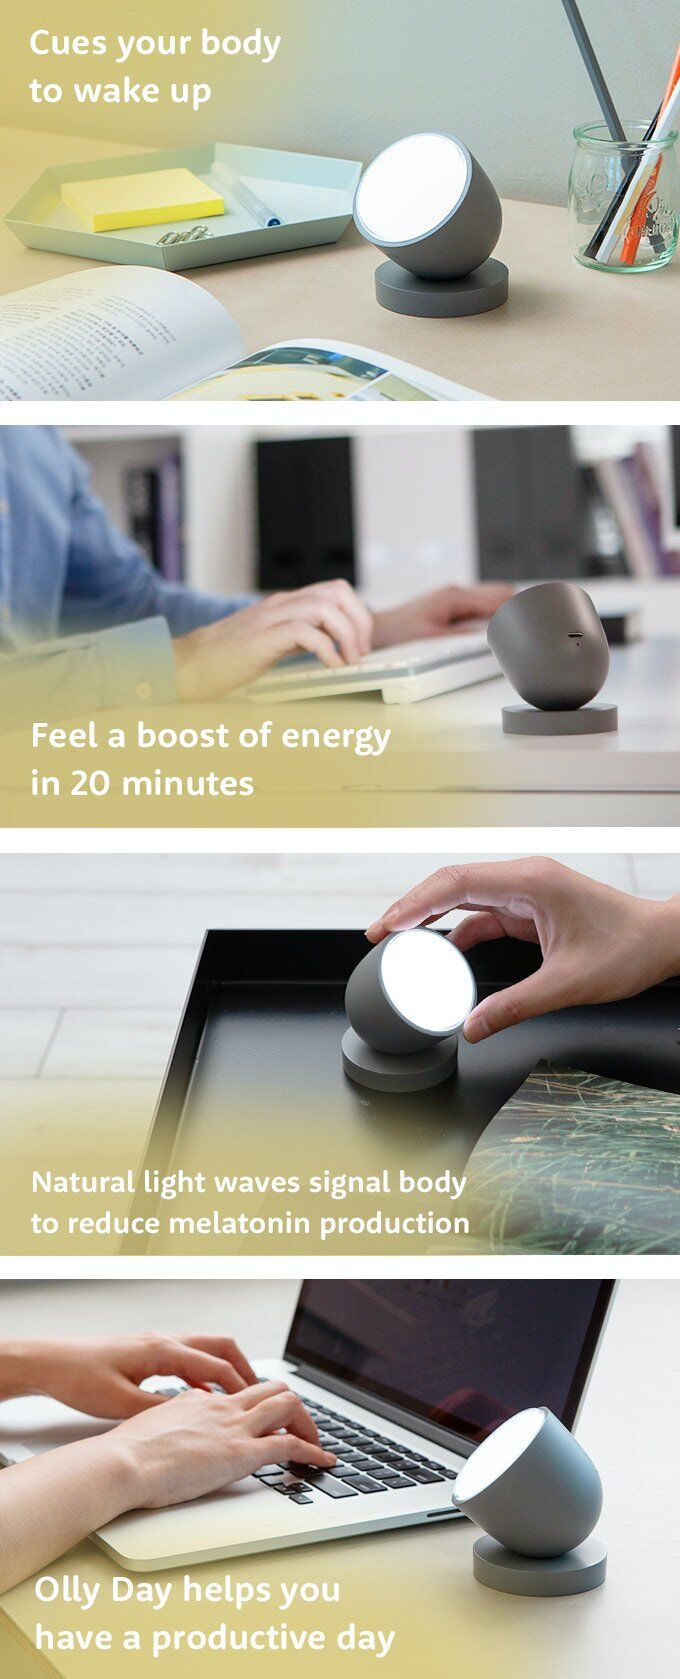 'Olly' Light Uses Light Therapy to Balance Melatonin Production